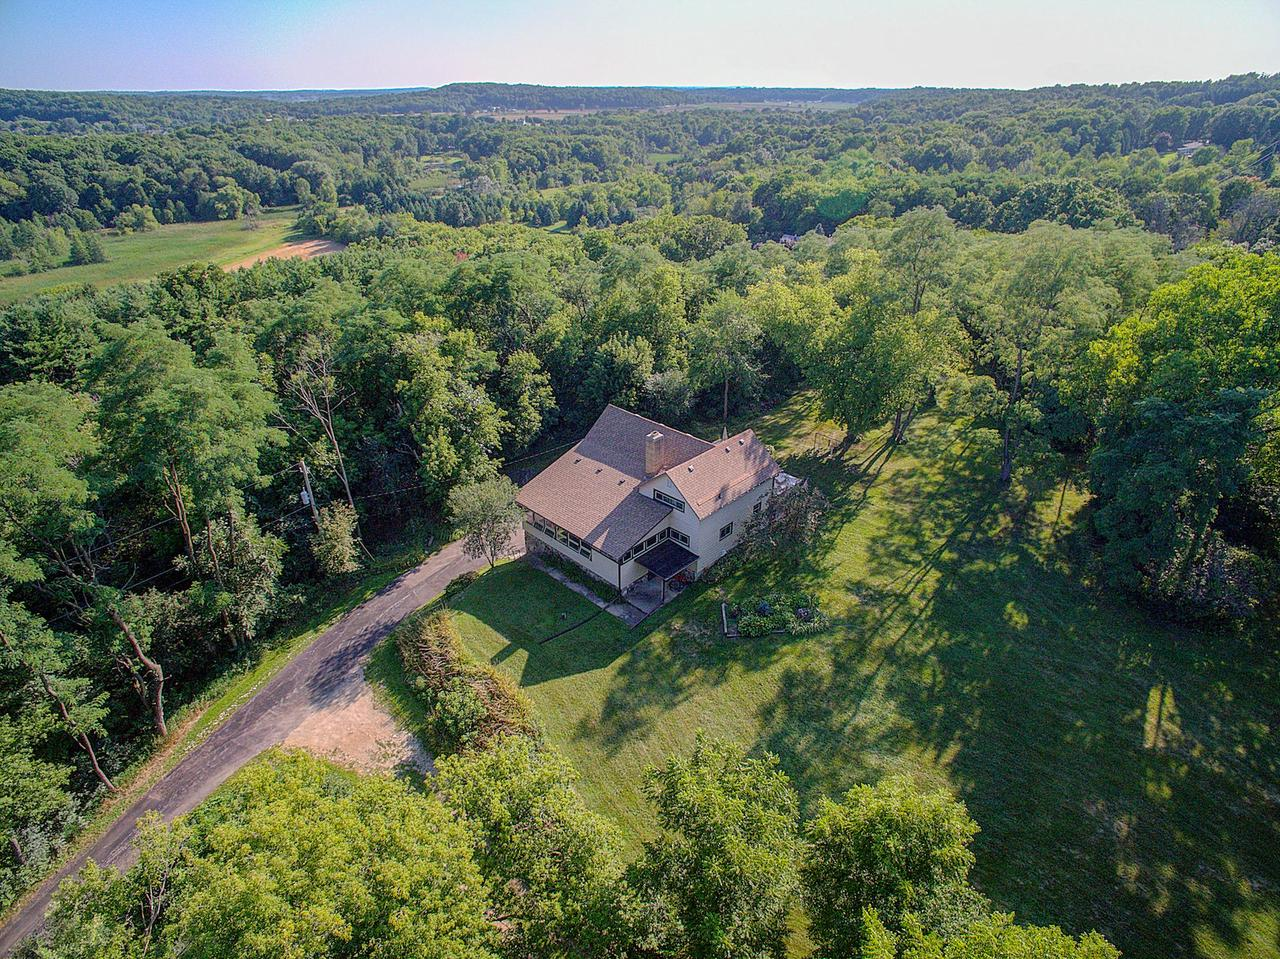 ''The Hill'' First time offered since 1967. Stunning private setting for this 7.28 Ac.  lovingly cared for and cherished family homestead, Germantown schools. Enter your private retreat on a long winding driveway. Your family and guests will love the impressively large great room w/stone natural fireplace, embrace the wooded rural views from the walls of windows. Make holiday memories in the huge country kitchen with center island. One BR & Den on the main floor. The upper level boasts three large bedrooms with HWF's. Plenty of room to roam; Large rear deck for cookouts. Photographic rustic barn foundation, silo & shed. Views for miles! A rare opportunity to make this house your home. Recent updates include; roof, windows, insulation, furnace and all new flooring on the main level. Welcome